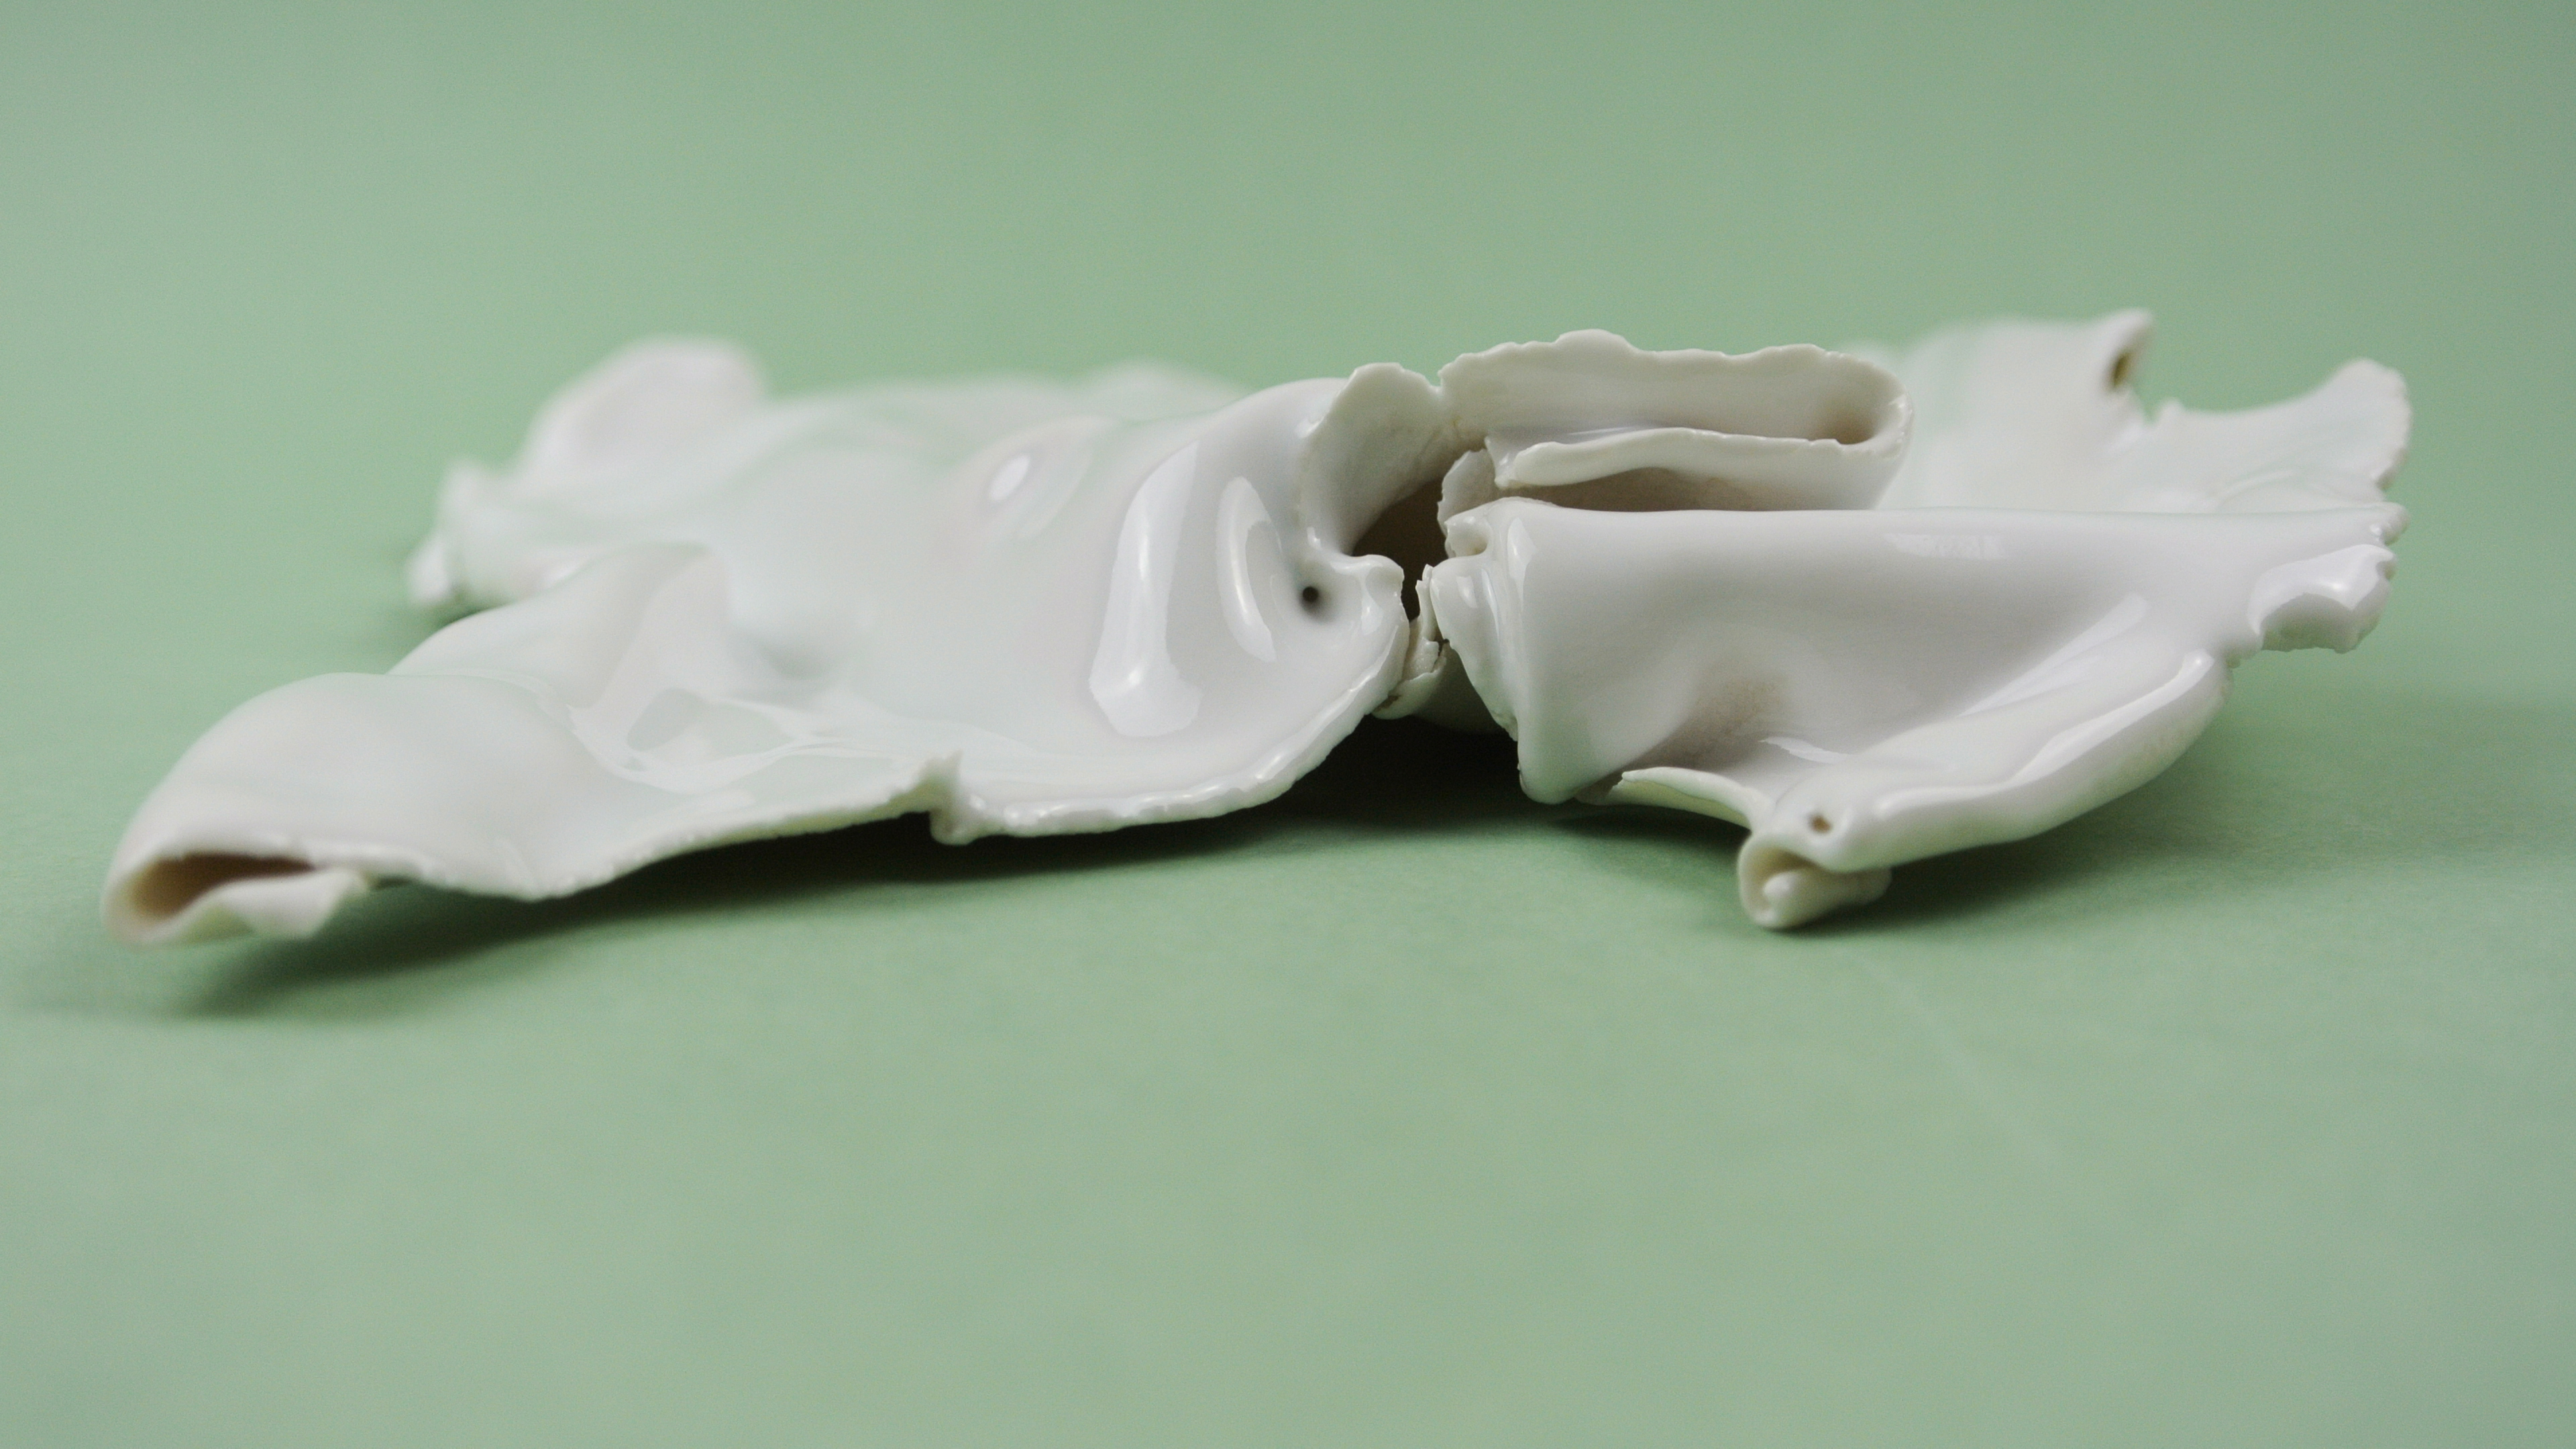 Paper weight 1, detail